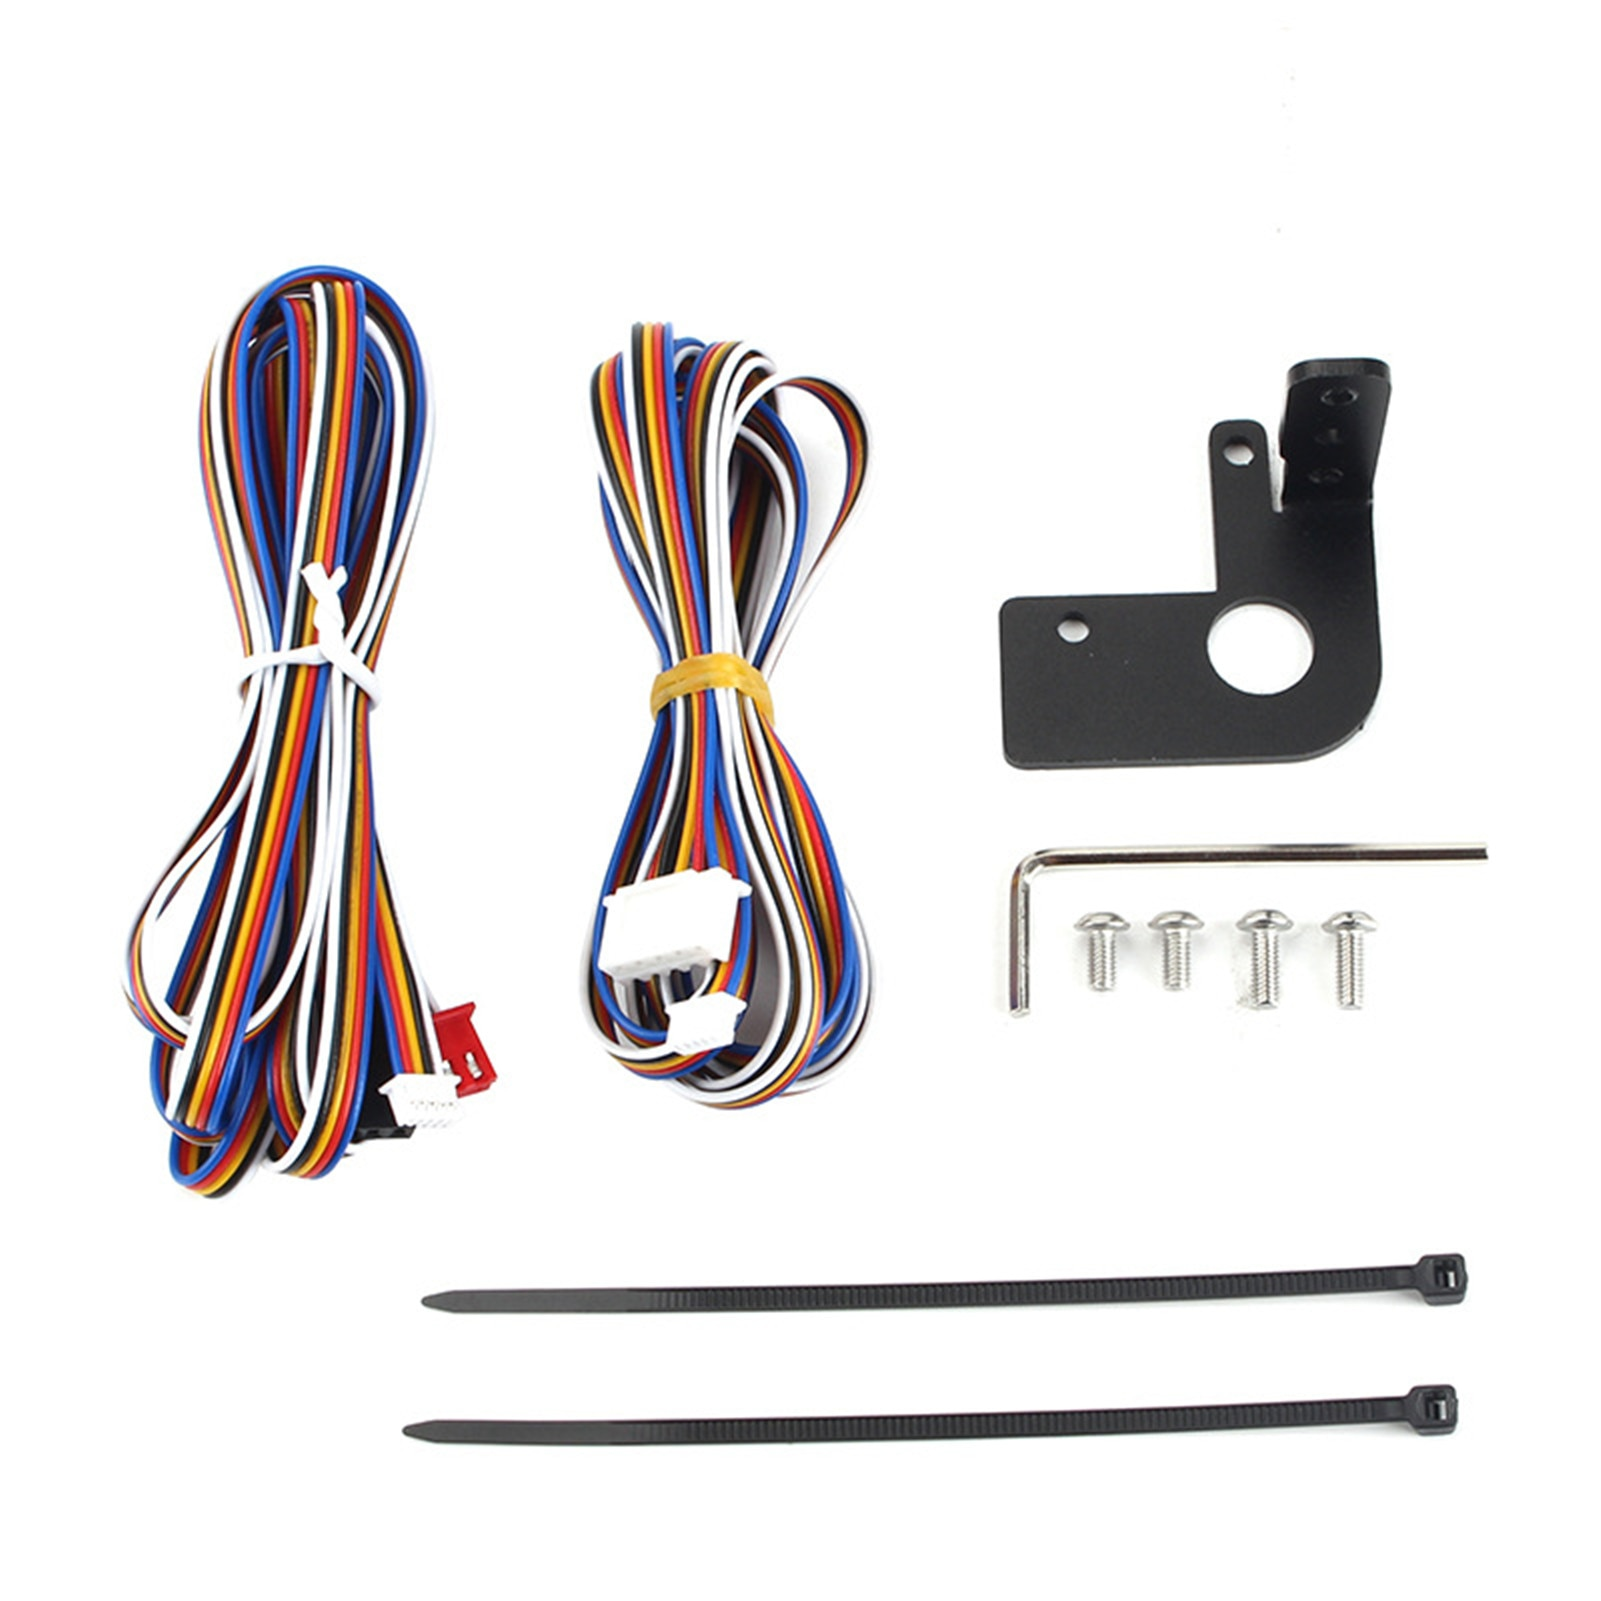 Printer Connection Kit 3D Printer Parts BLTOUCH Extension Cable +Mount For CR 10 Creality3D Printer And Normal Controller Board